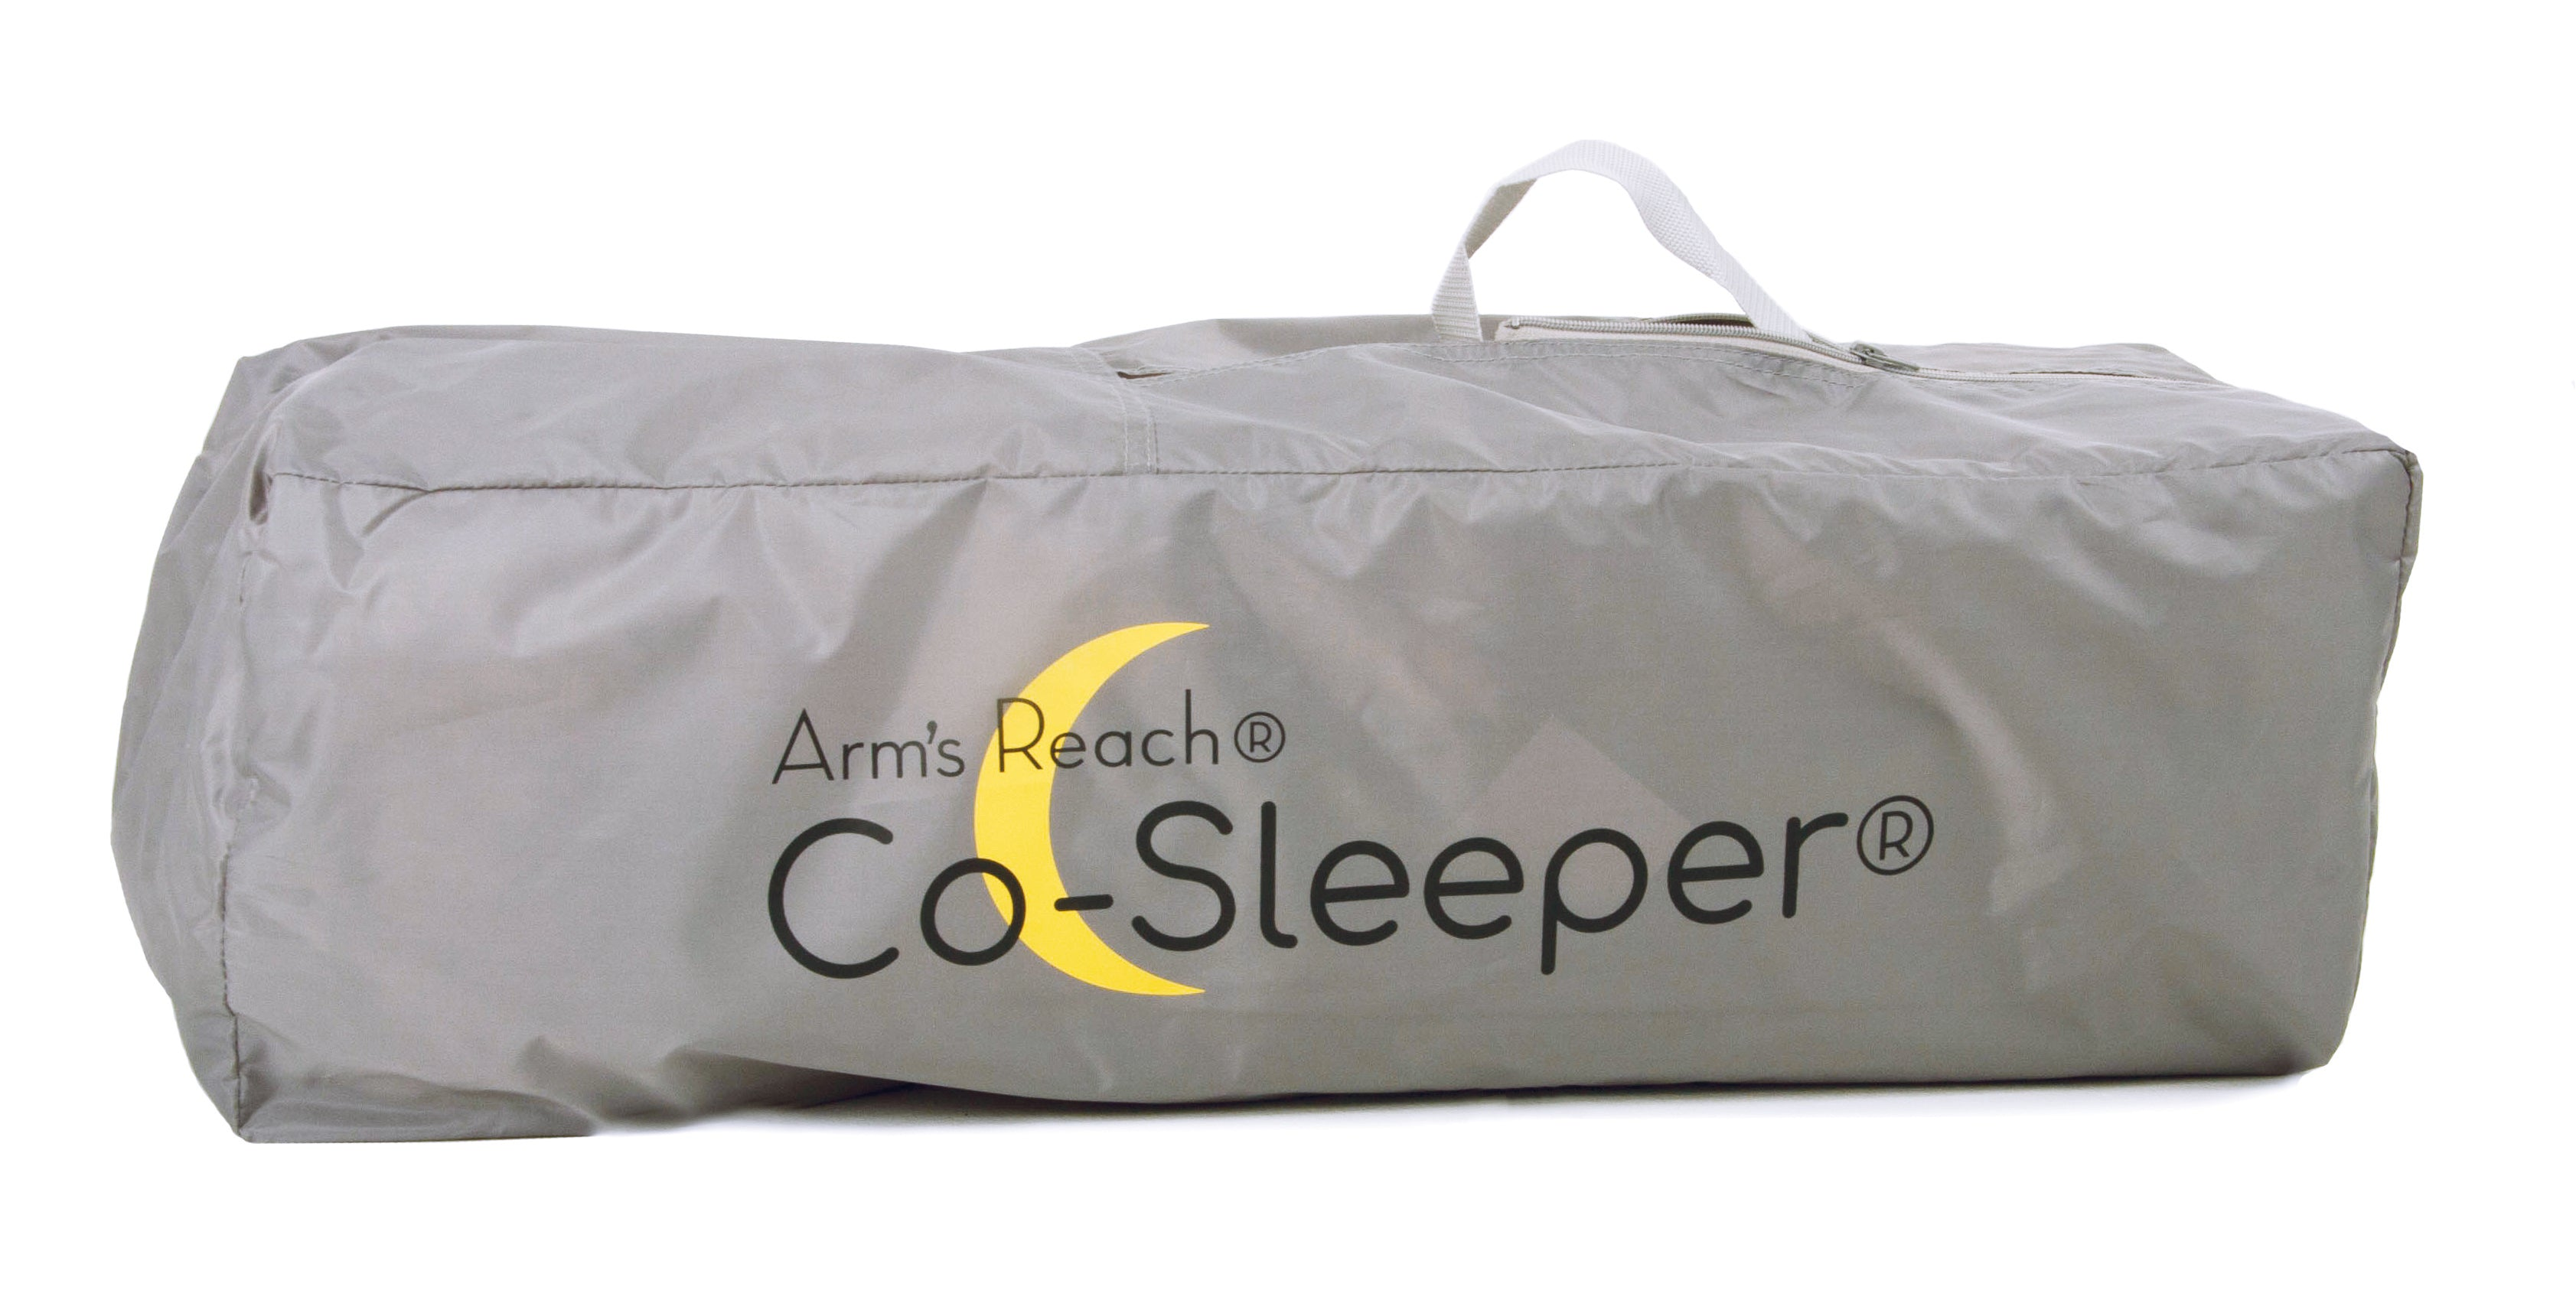 MINI EZEE™ 2 IN 1 CO-SLEEPER®